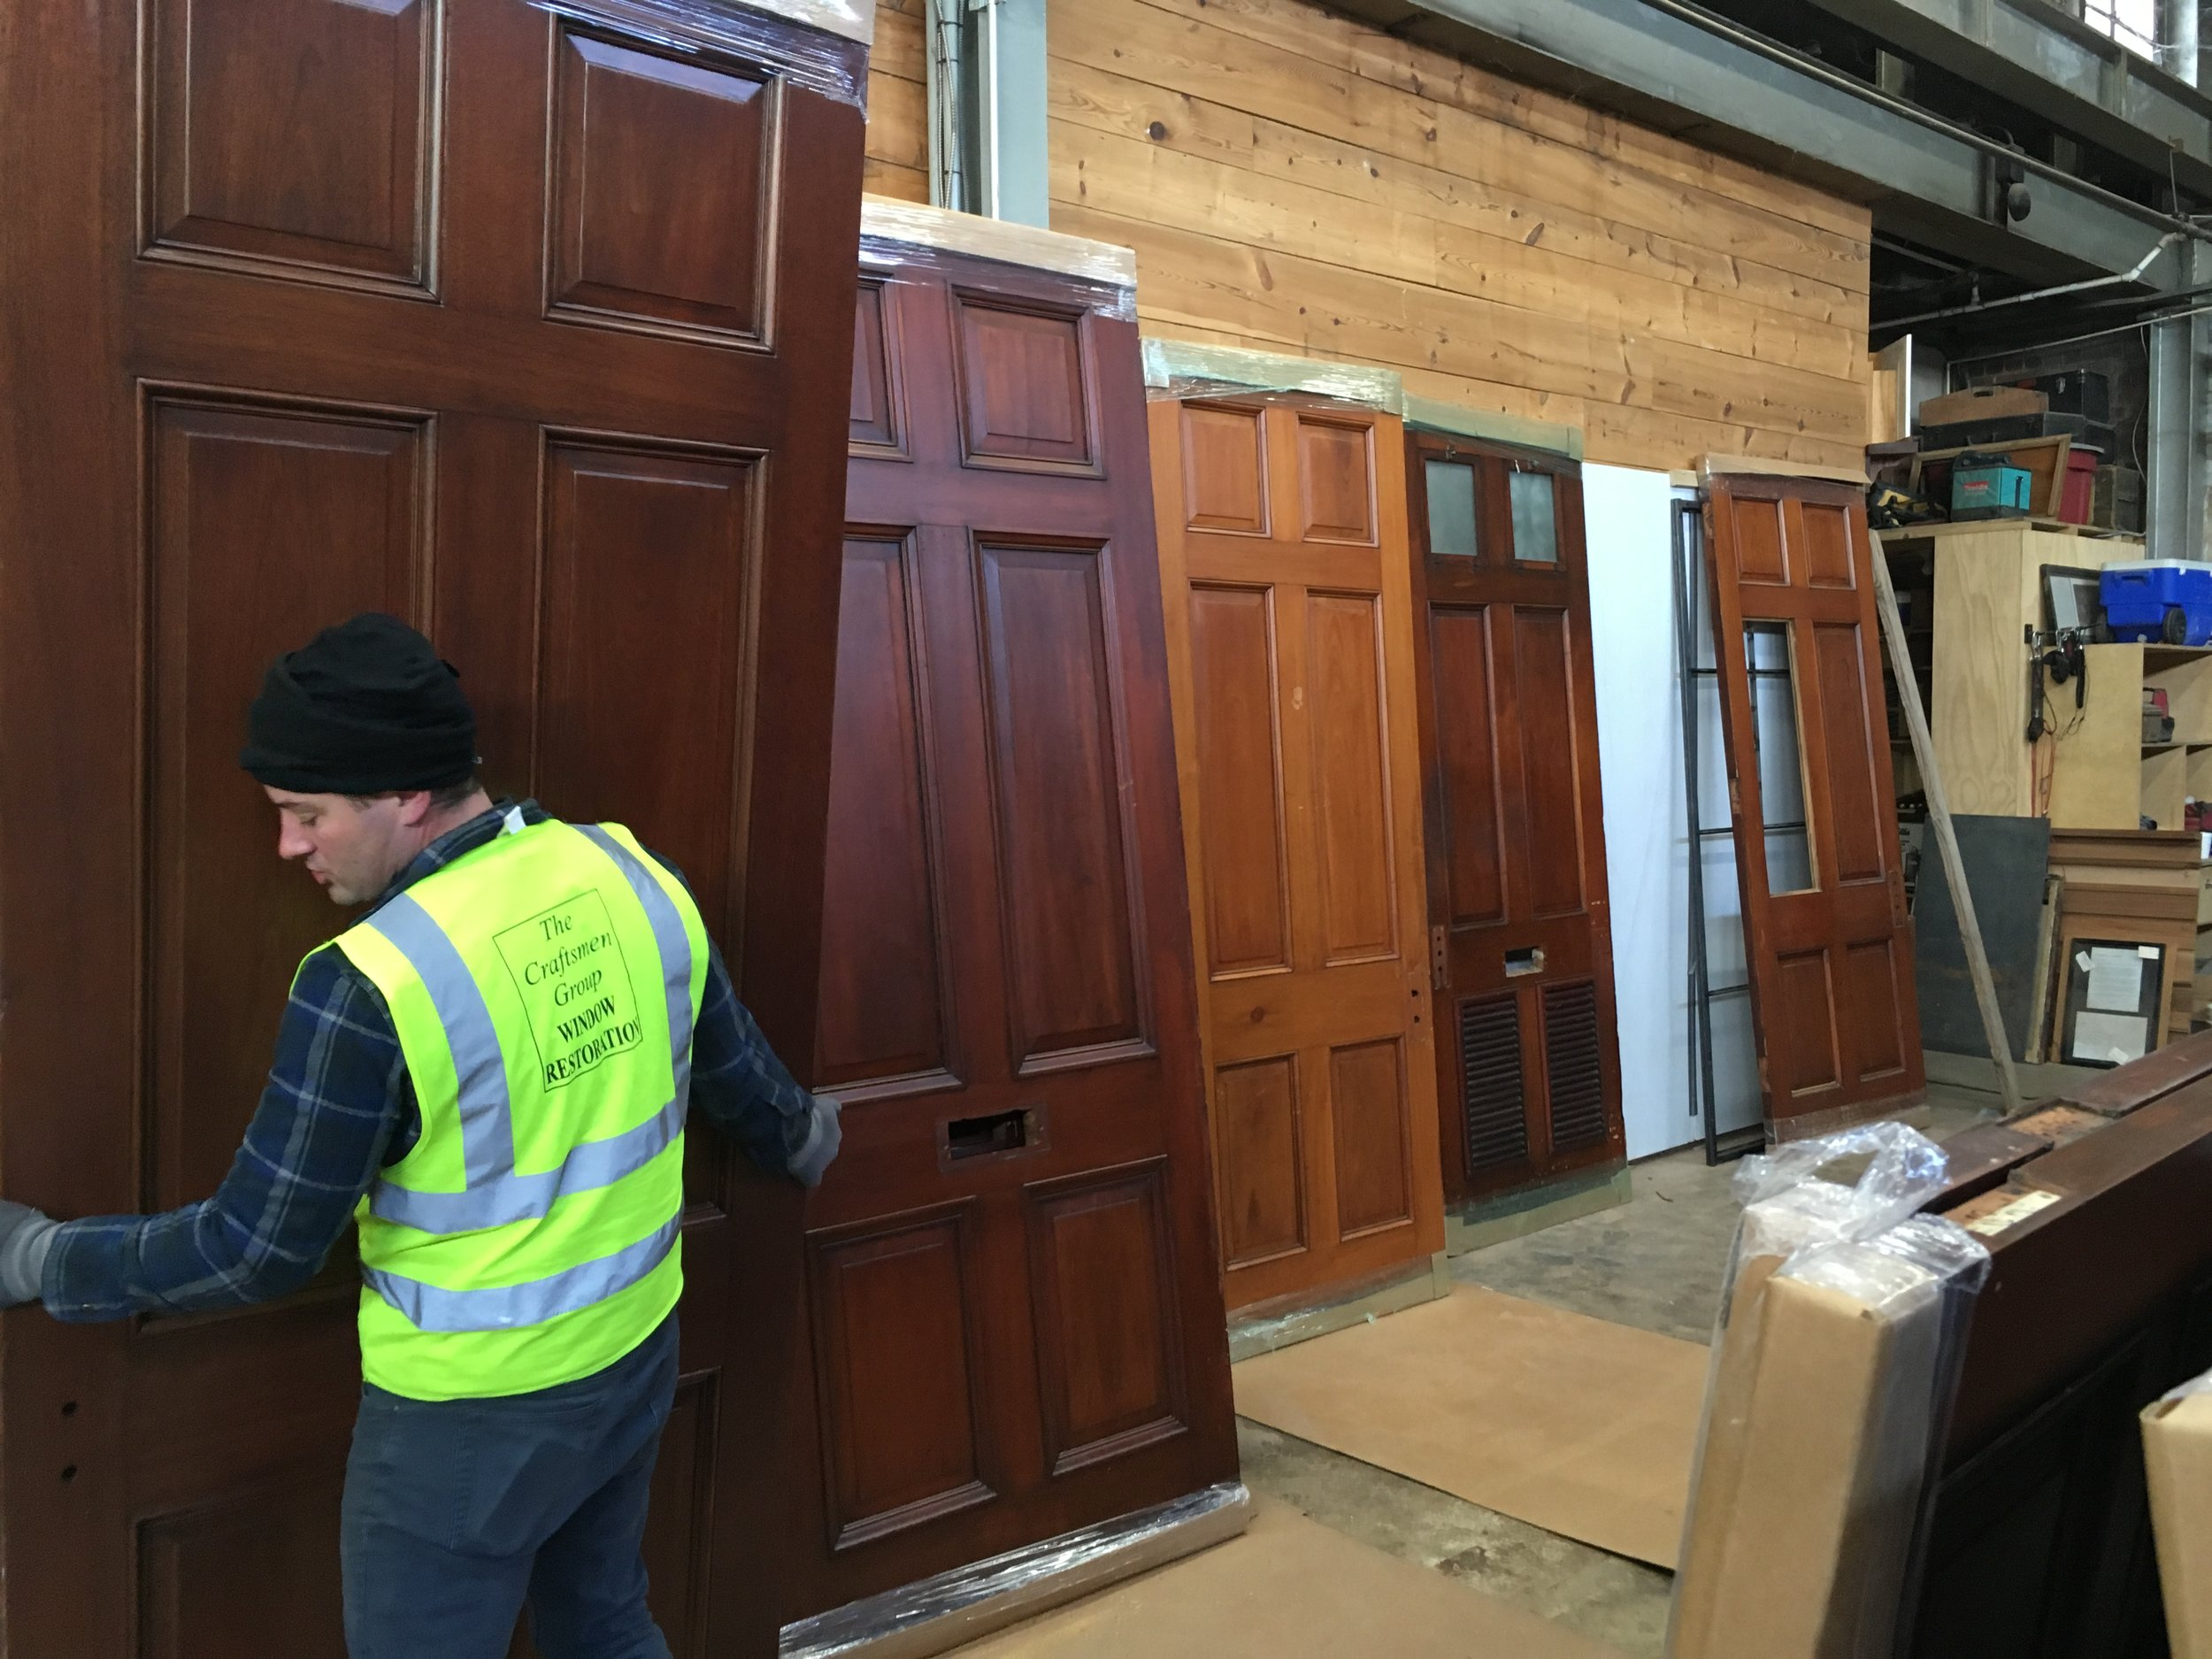 After 115 years of maintenance and neglect, the doors came to us in many shades of brown.  These handsome solid mahogany doors will certainly endure another 100 years after our restoration.